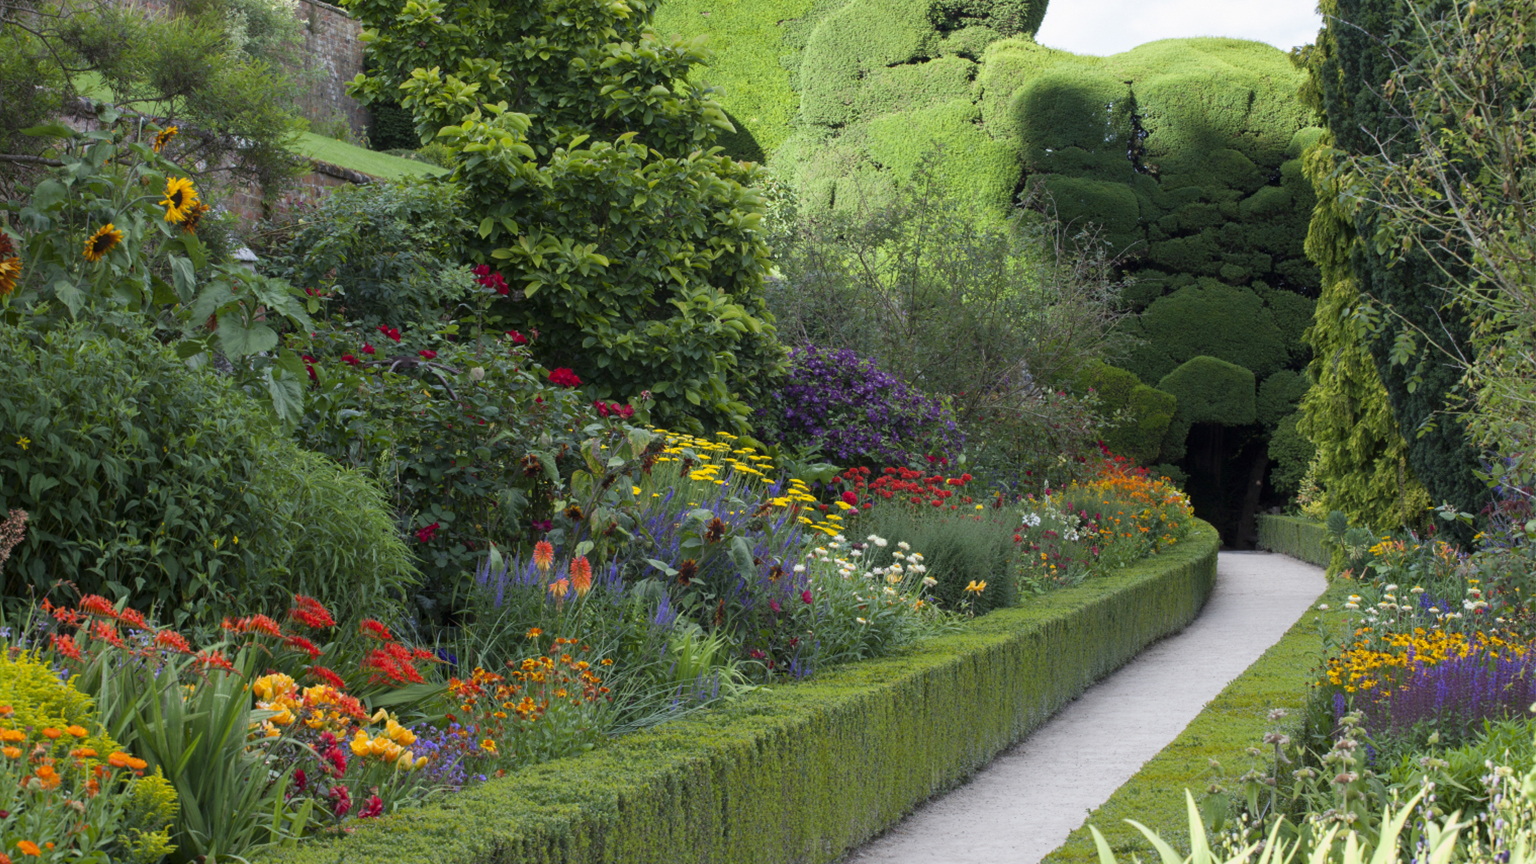 The hot border in the garden at Powis.